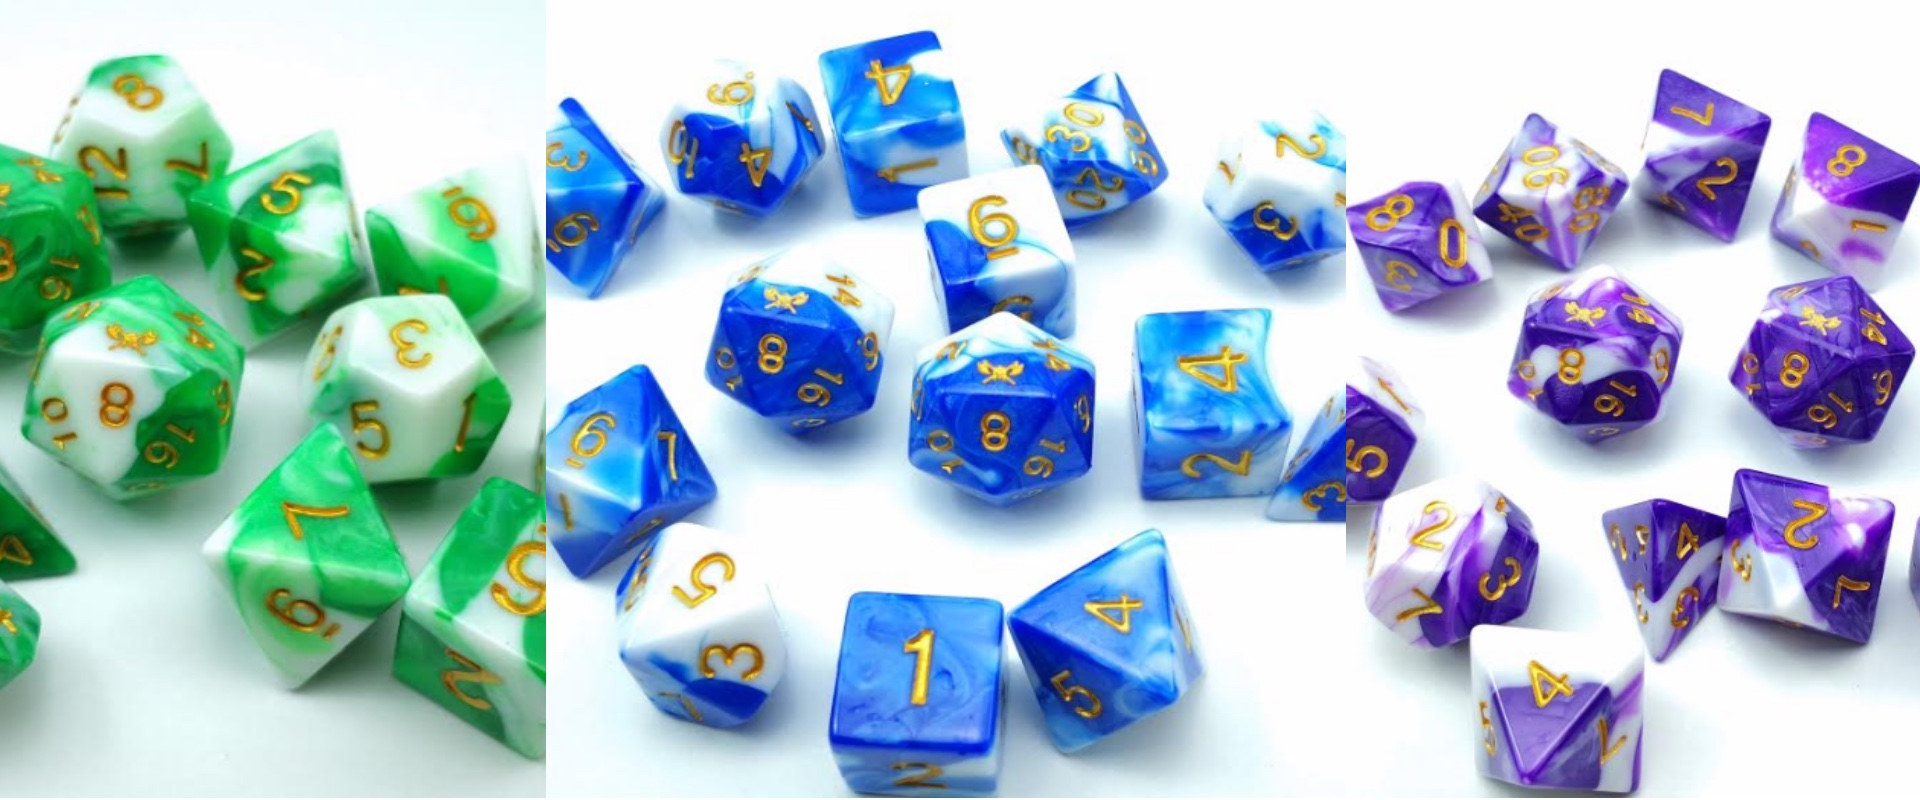 SkullSplitter Dice Brings AI-Enhanced Dice to the Table With